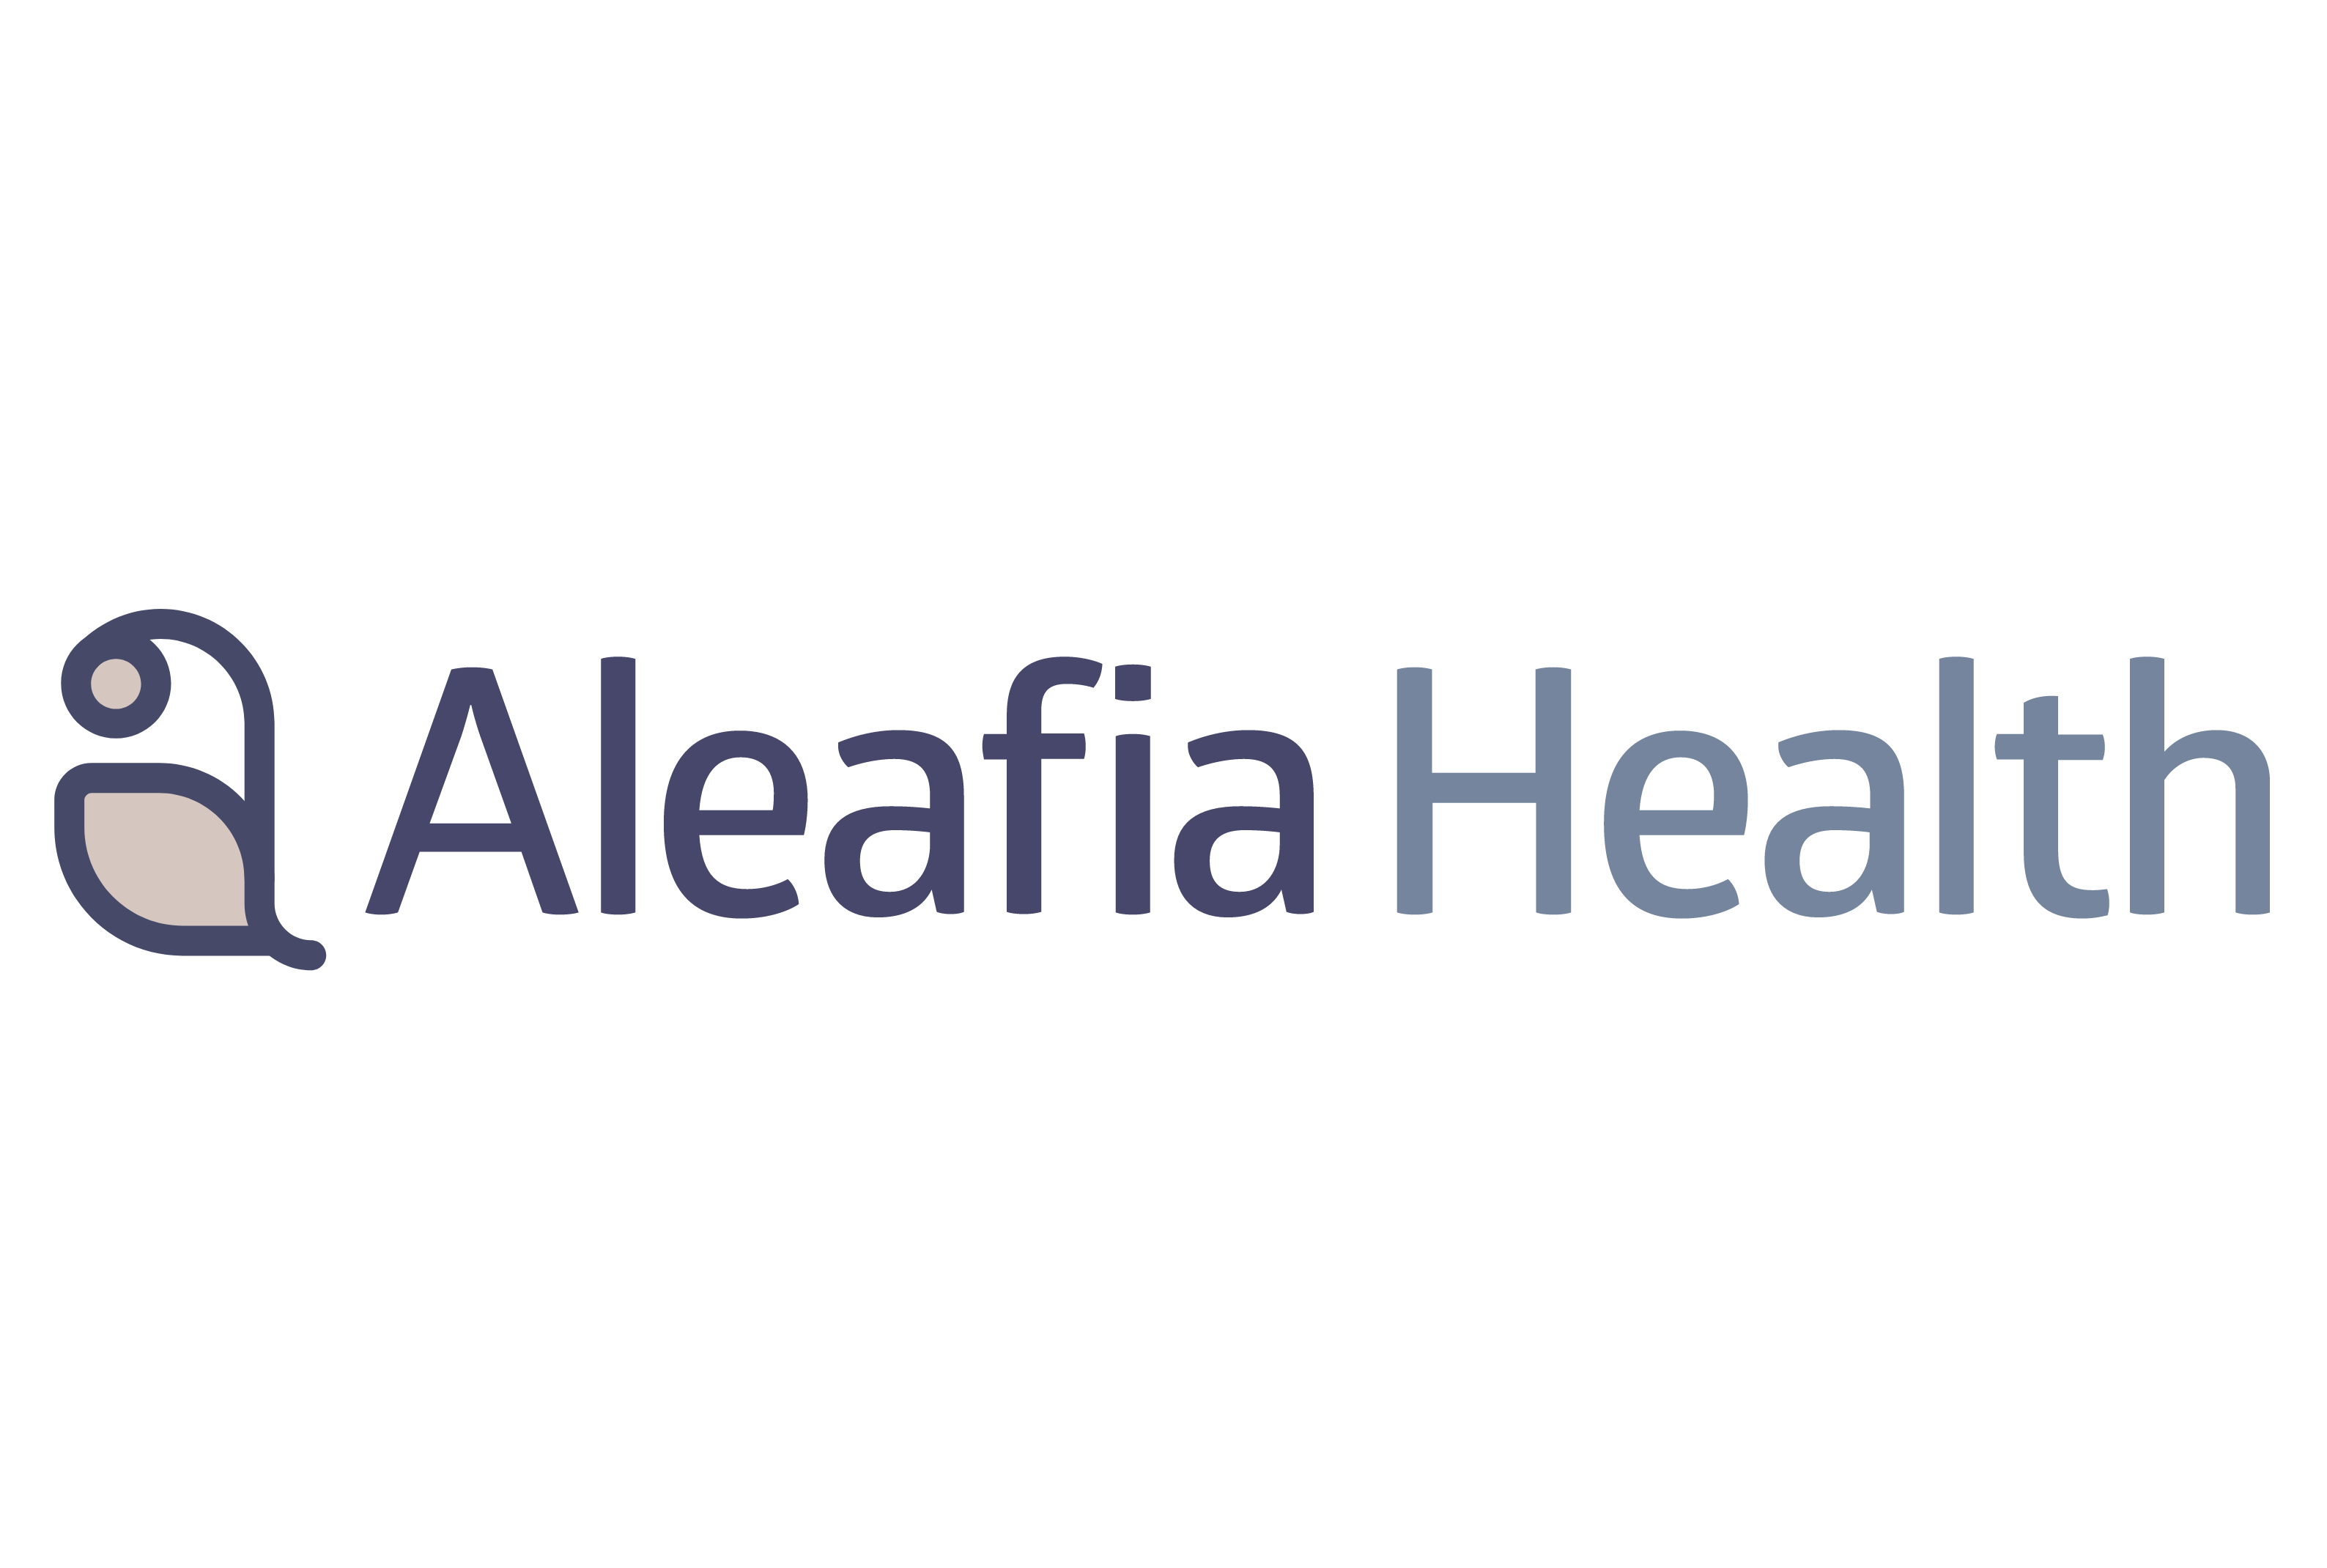 Aleafia Health Announces TSX Ticker Symbol Change to AH